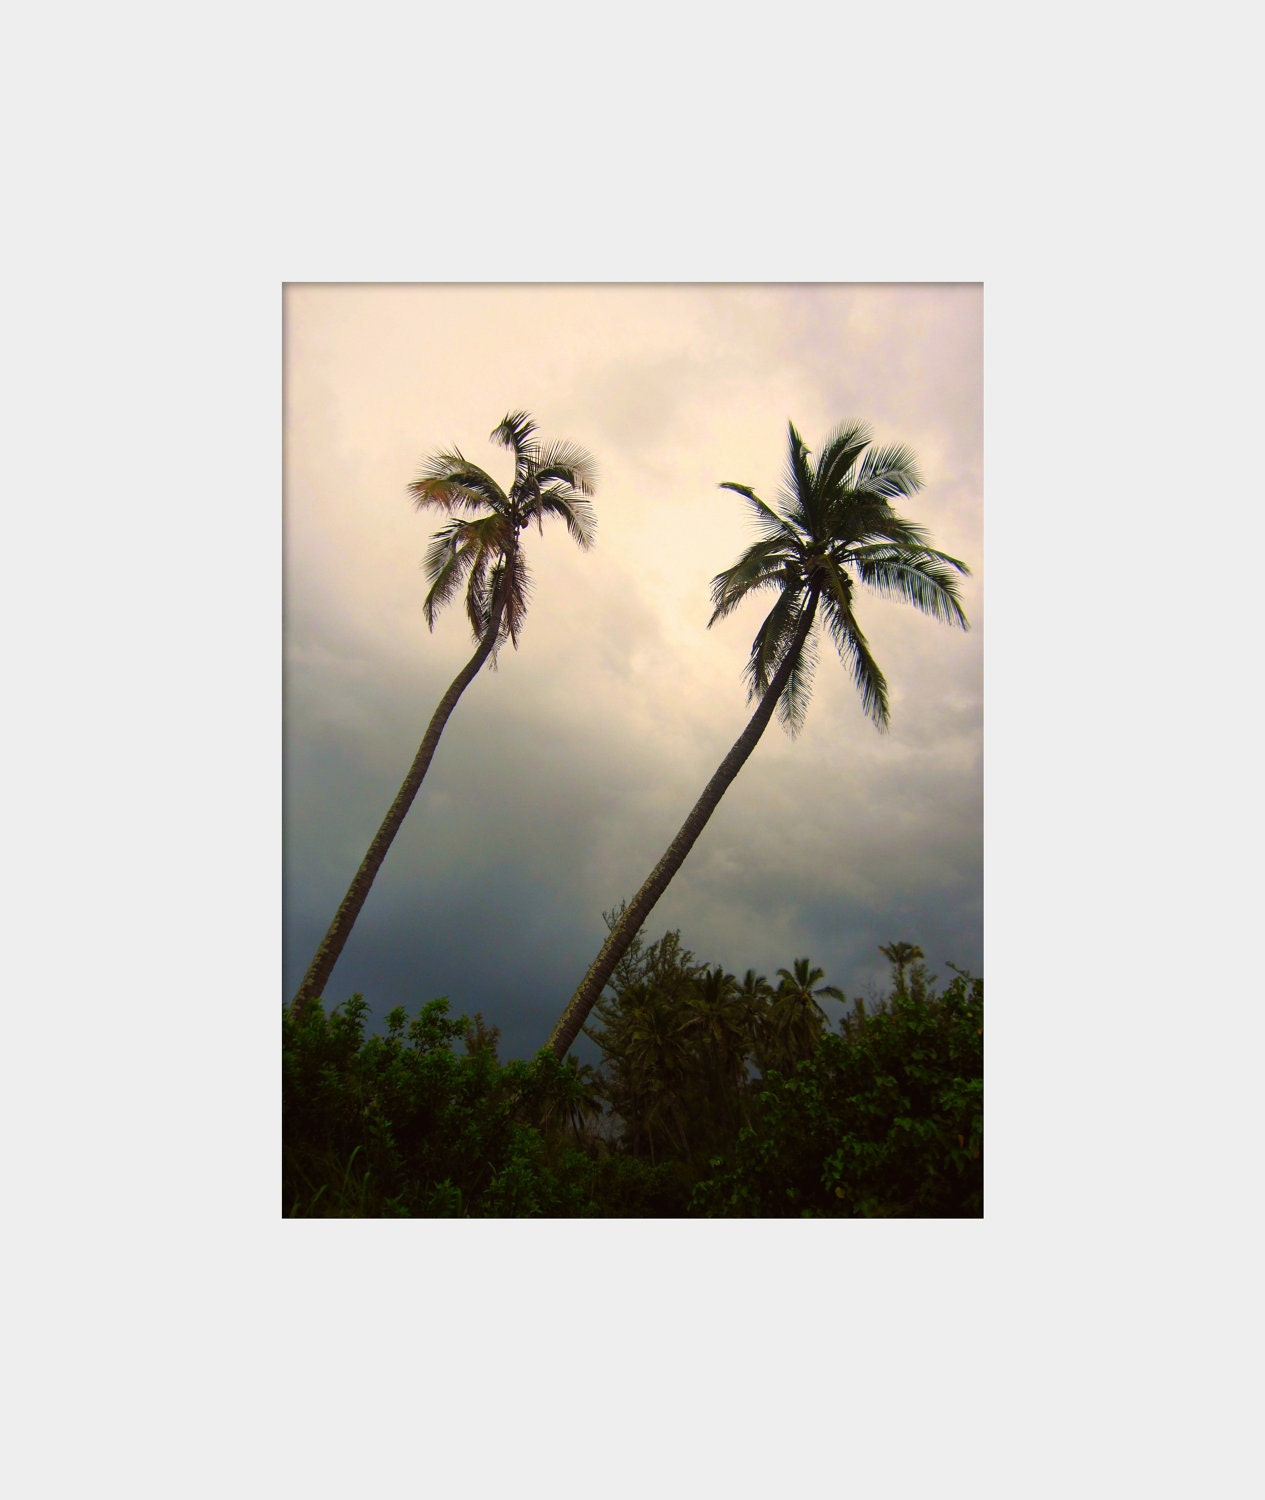 Parallel Palms: a fine art photograph print of two leaning palm trees on a stormy day in Hawaii - UninventedColors